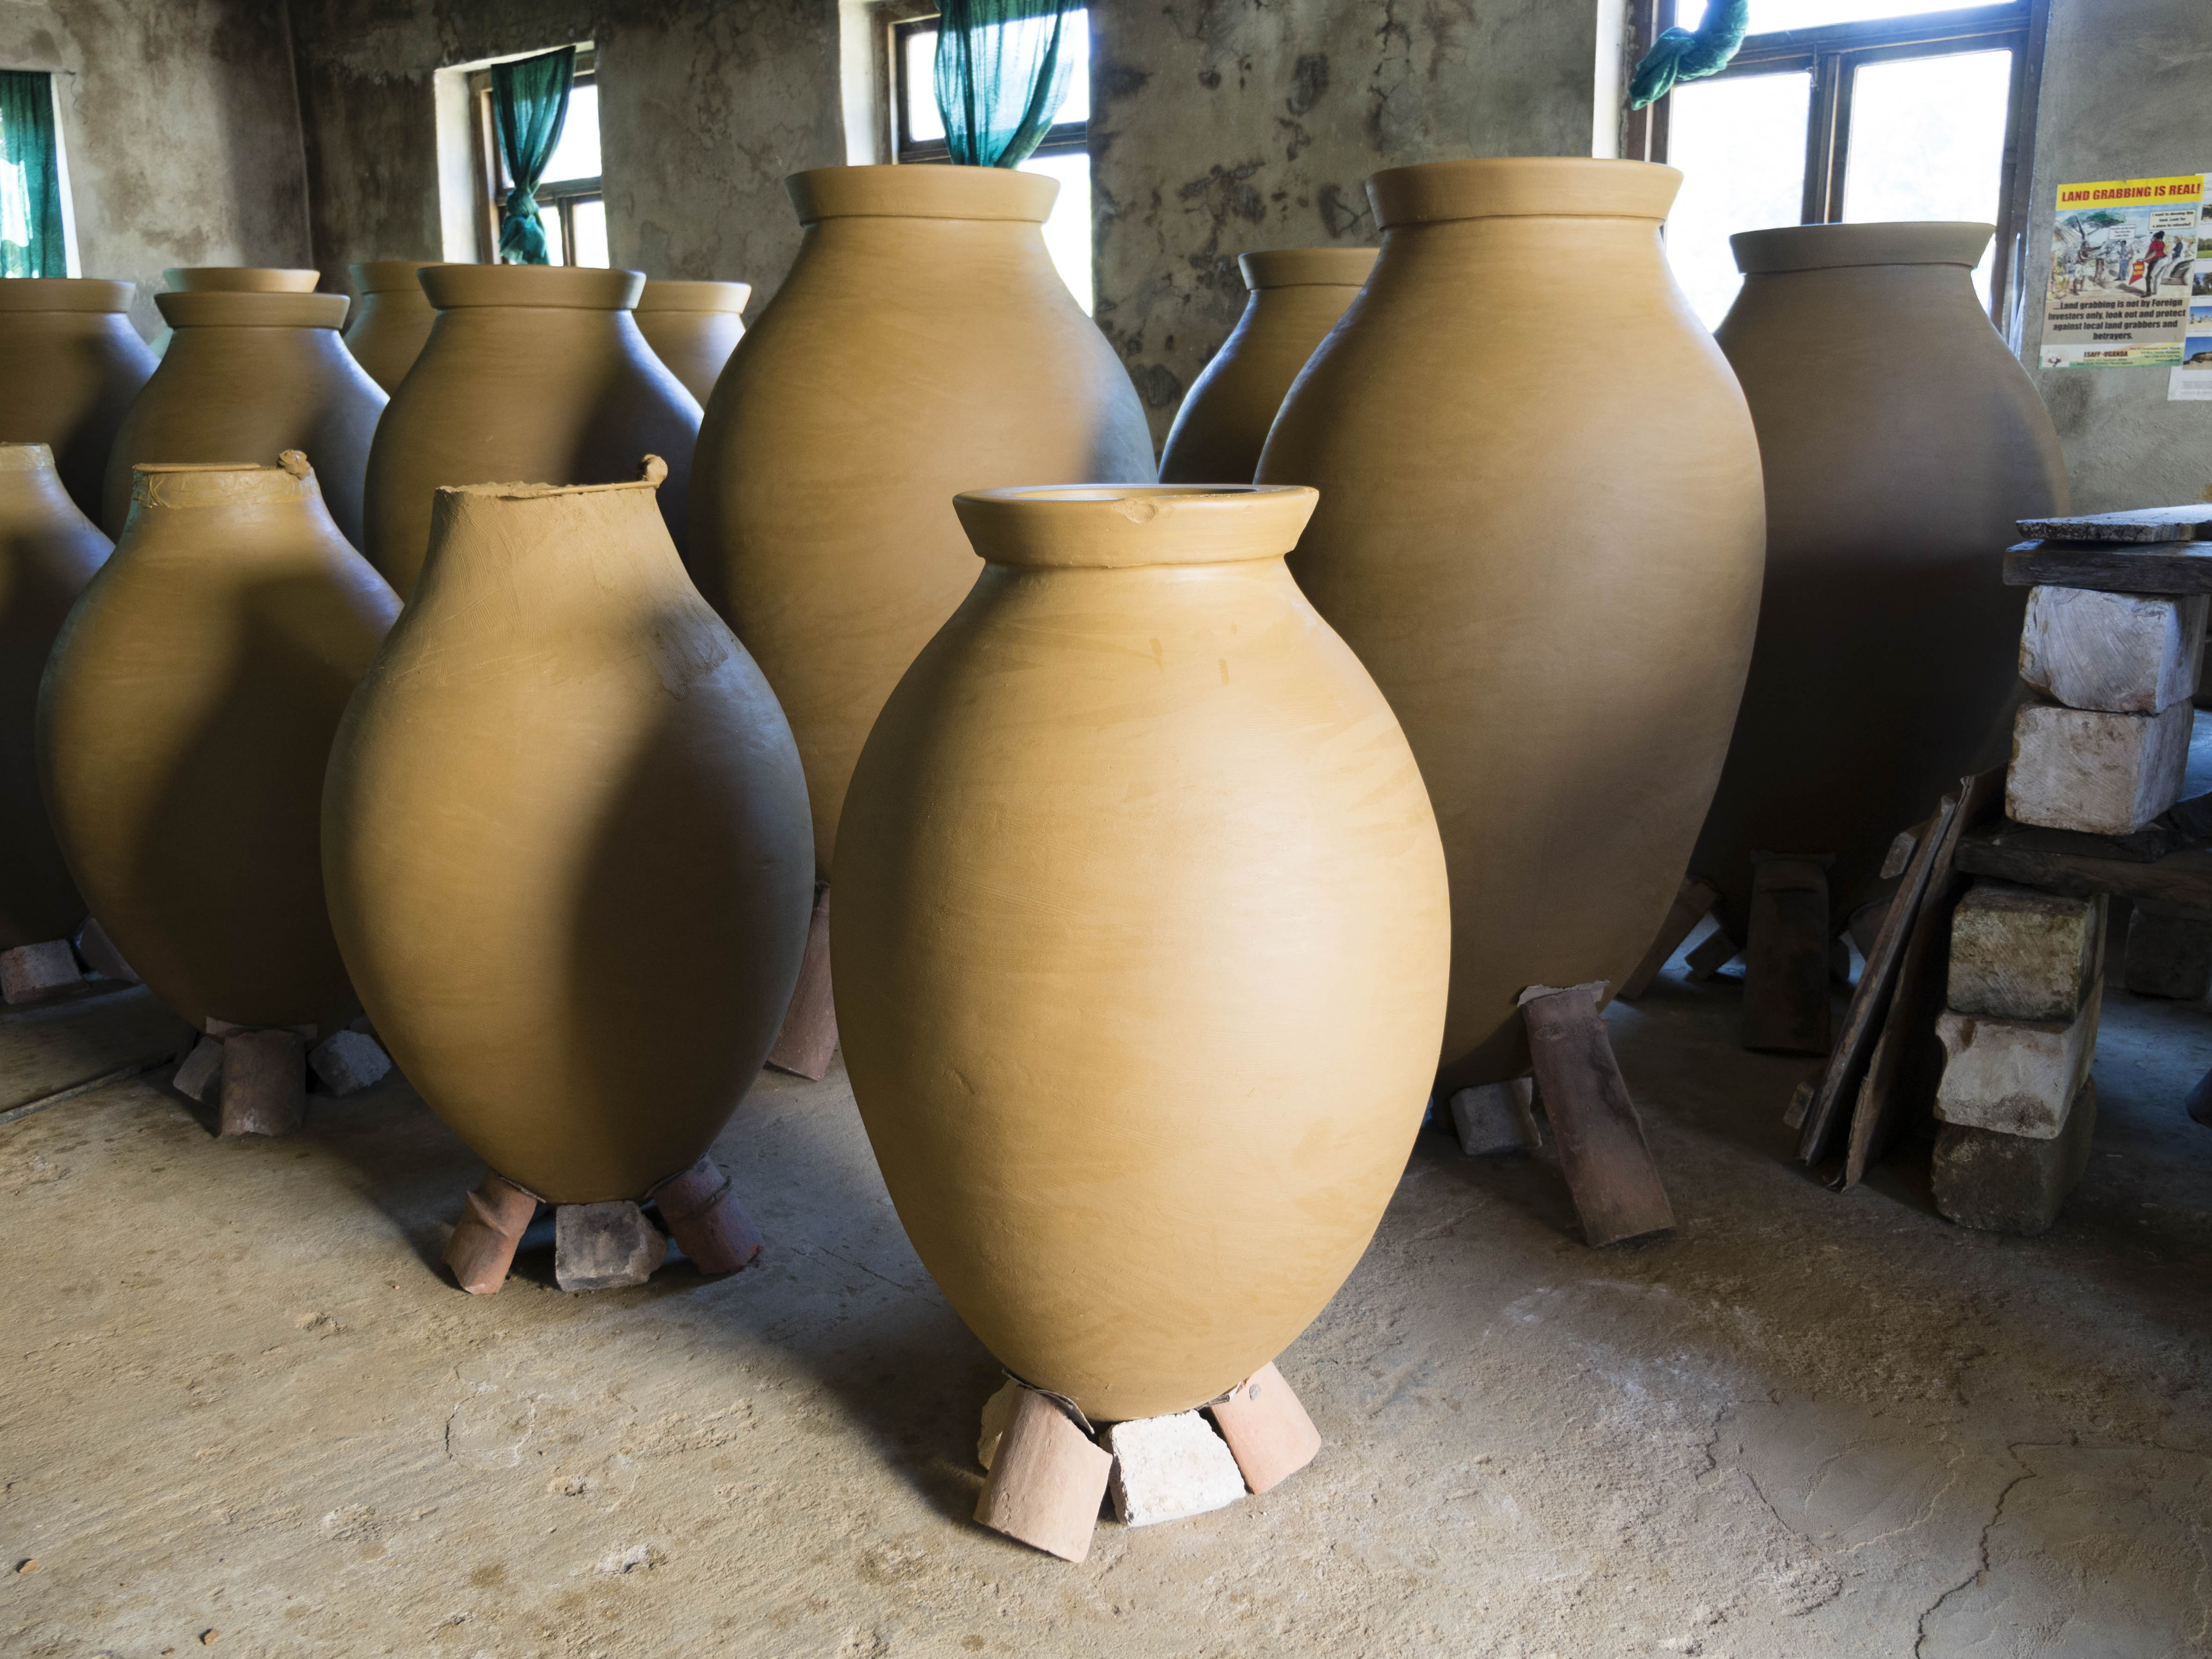 Clay qvevri being finished in the potter's studio